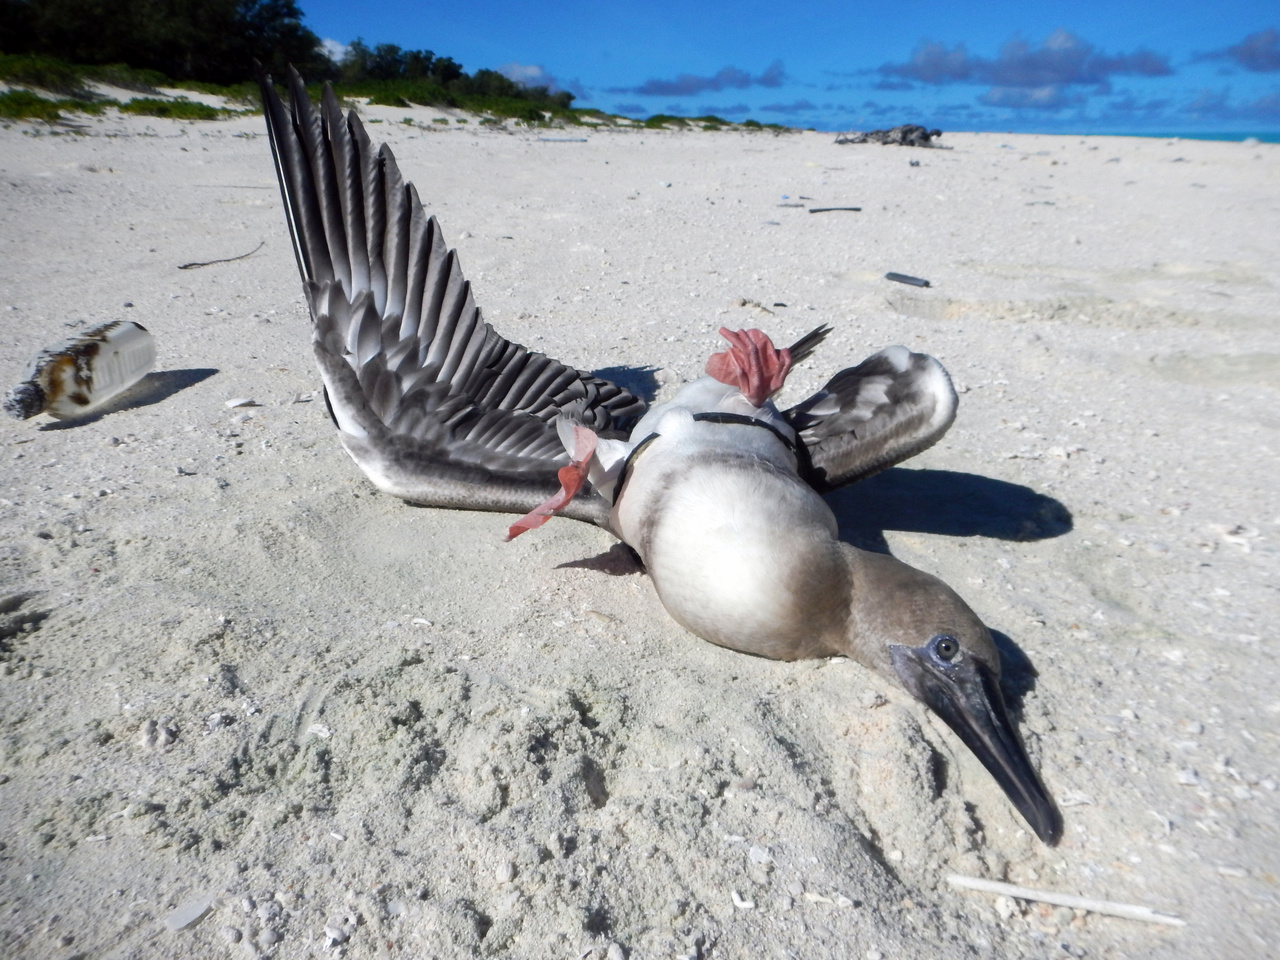 The booby bird found on Midway Atoll withit's wings pinned by a plastic ring from aneel cone trap